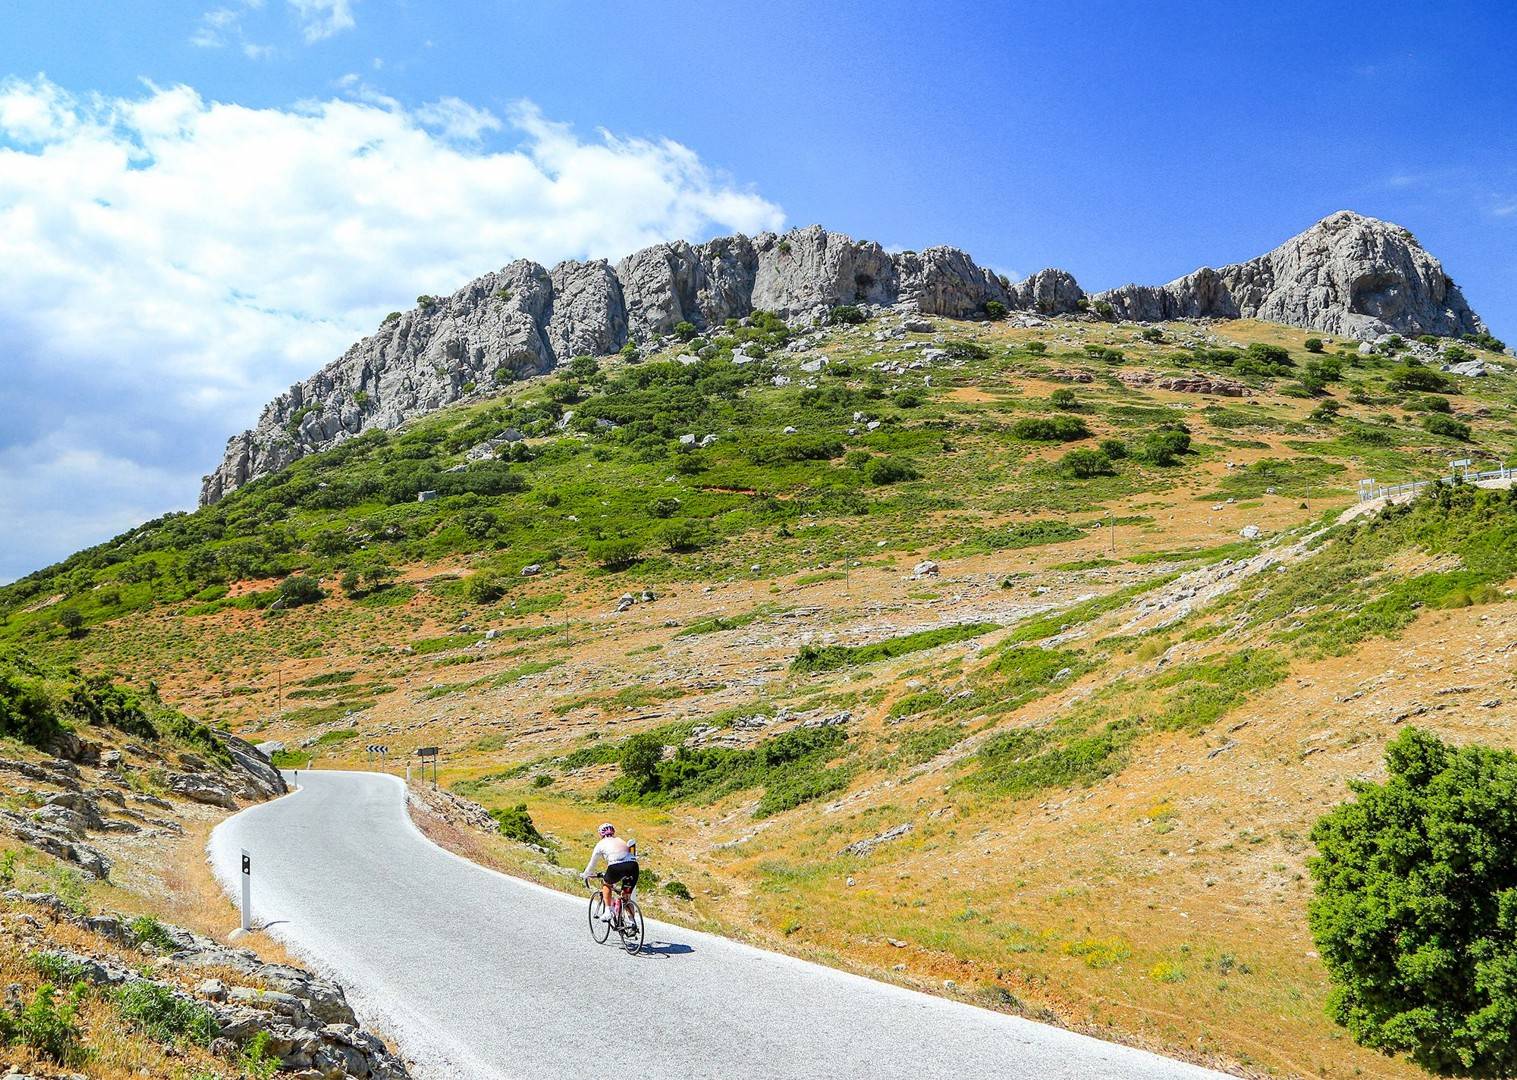 21-day-north-to-south-cycling-journey-saddle-skedaddle-holiday-spain.jpg - Spain - Basque Country to Andalucia - North to South (21 Days) - Guided Road Cycling Holiday - Road Cycling